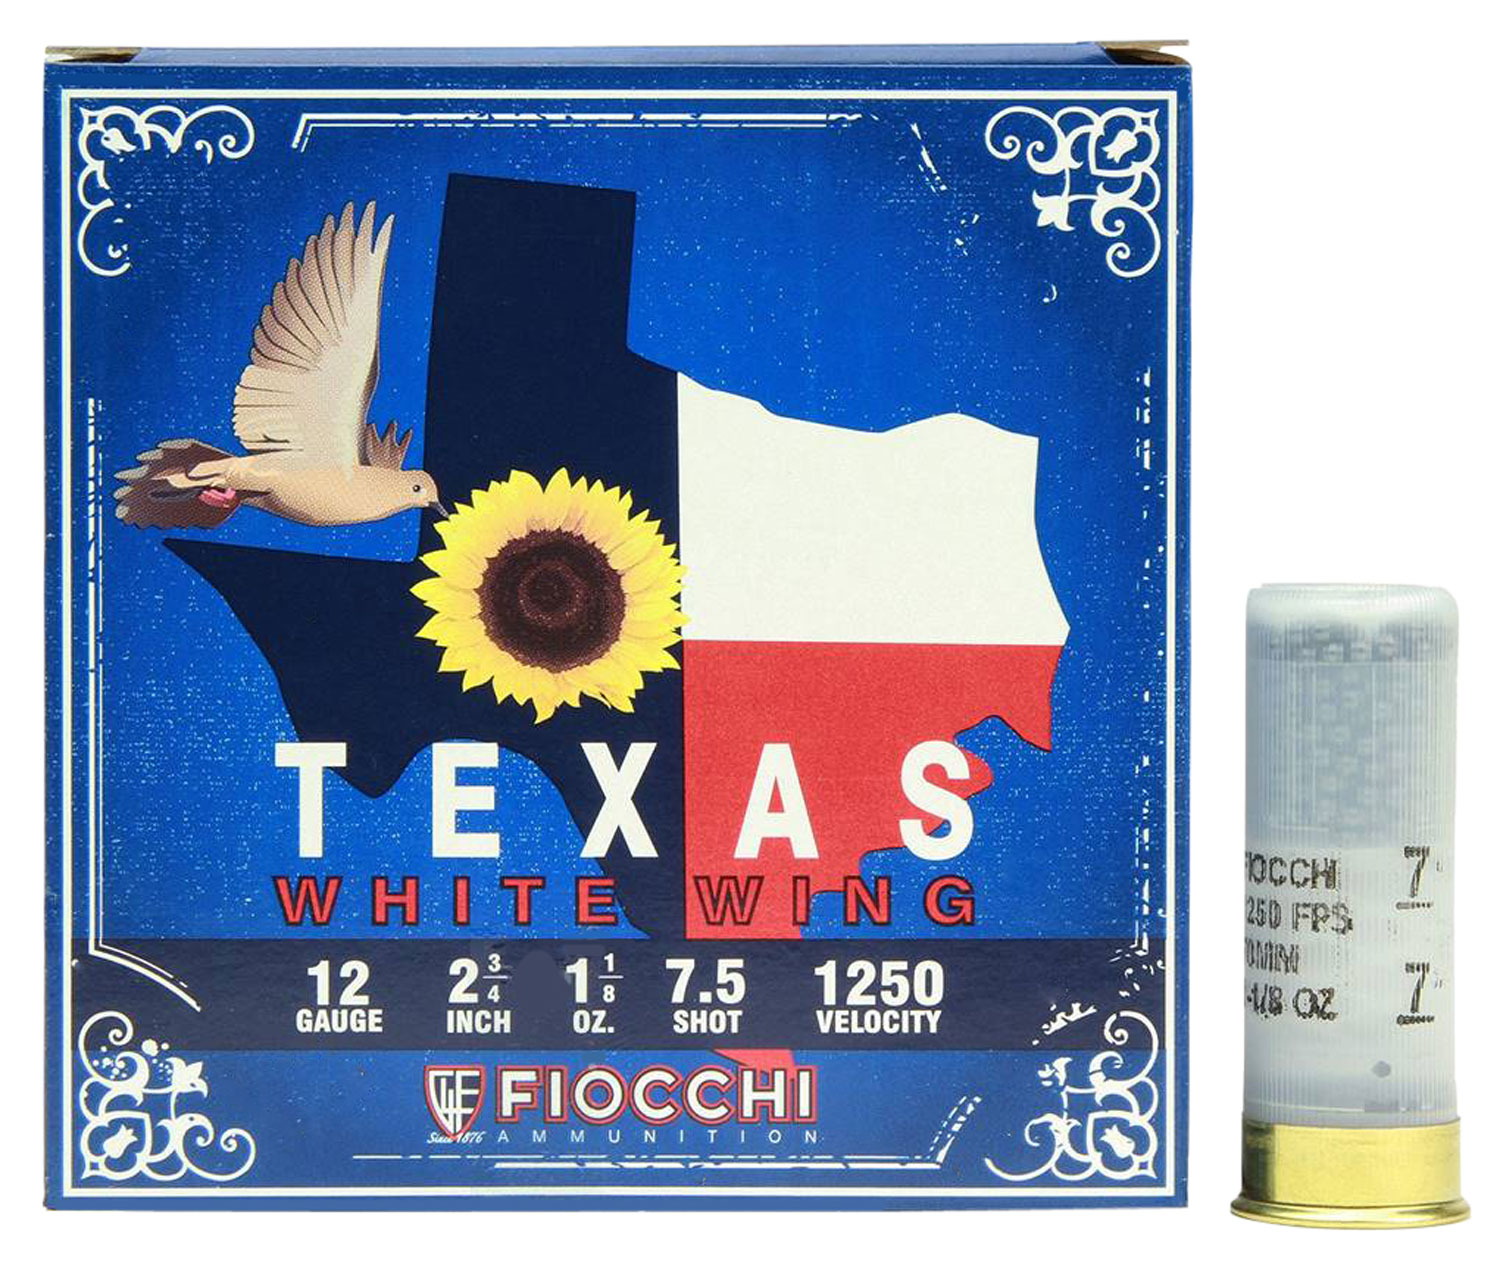 Fiocchi 12TWW187 Texas White Wing Dove Loads  12 Gauge 2.75